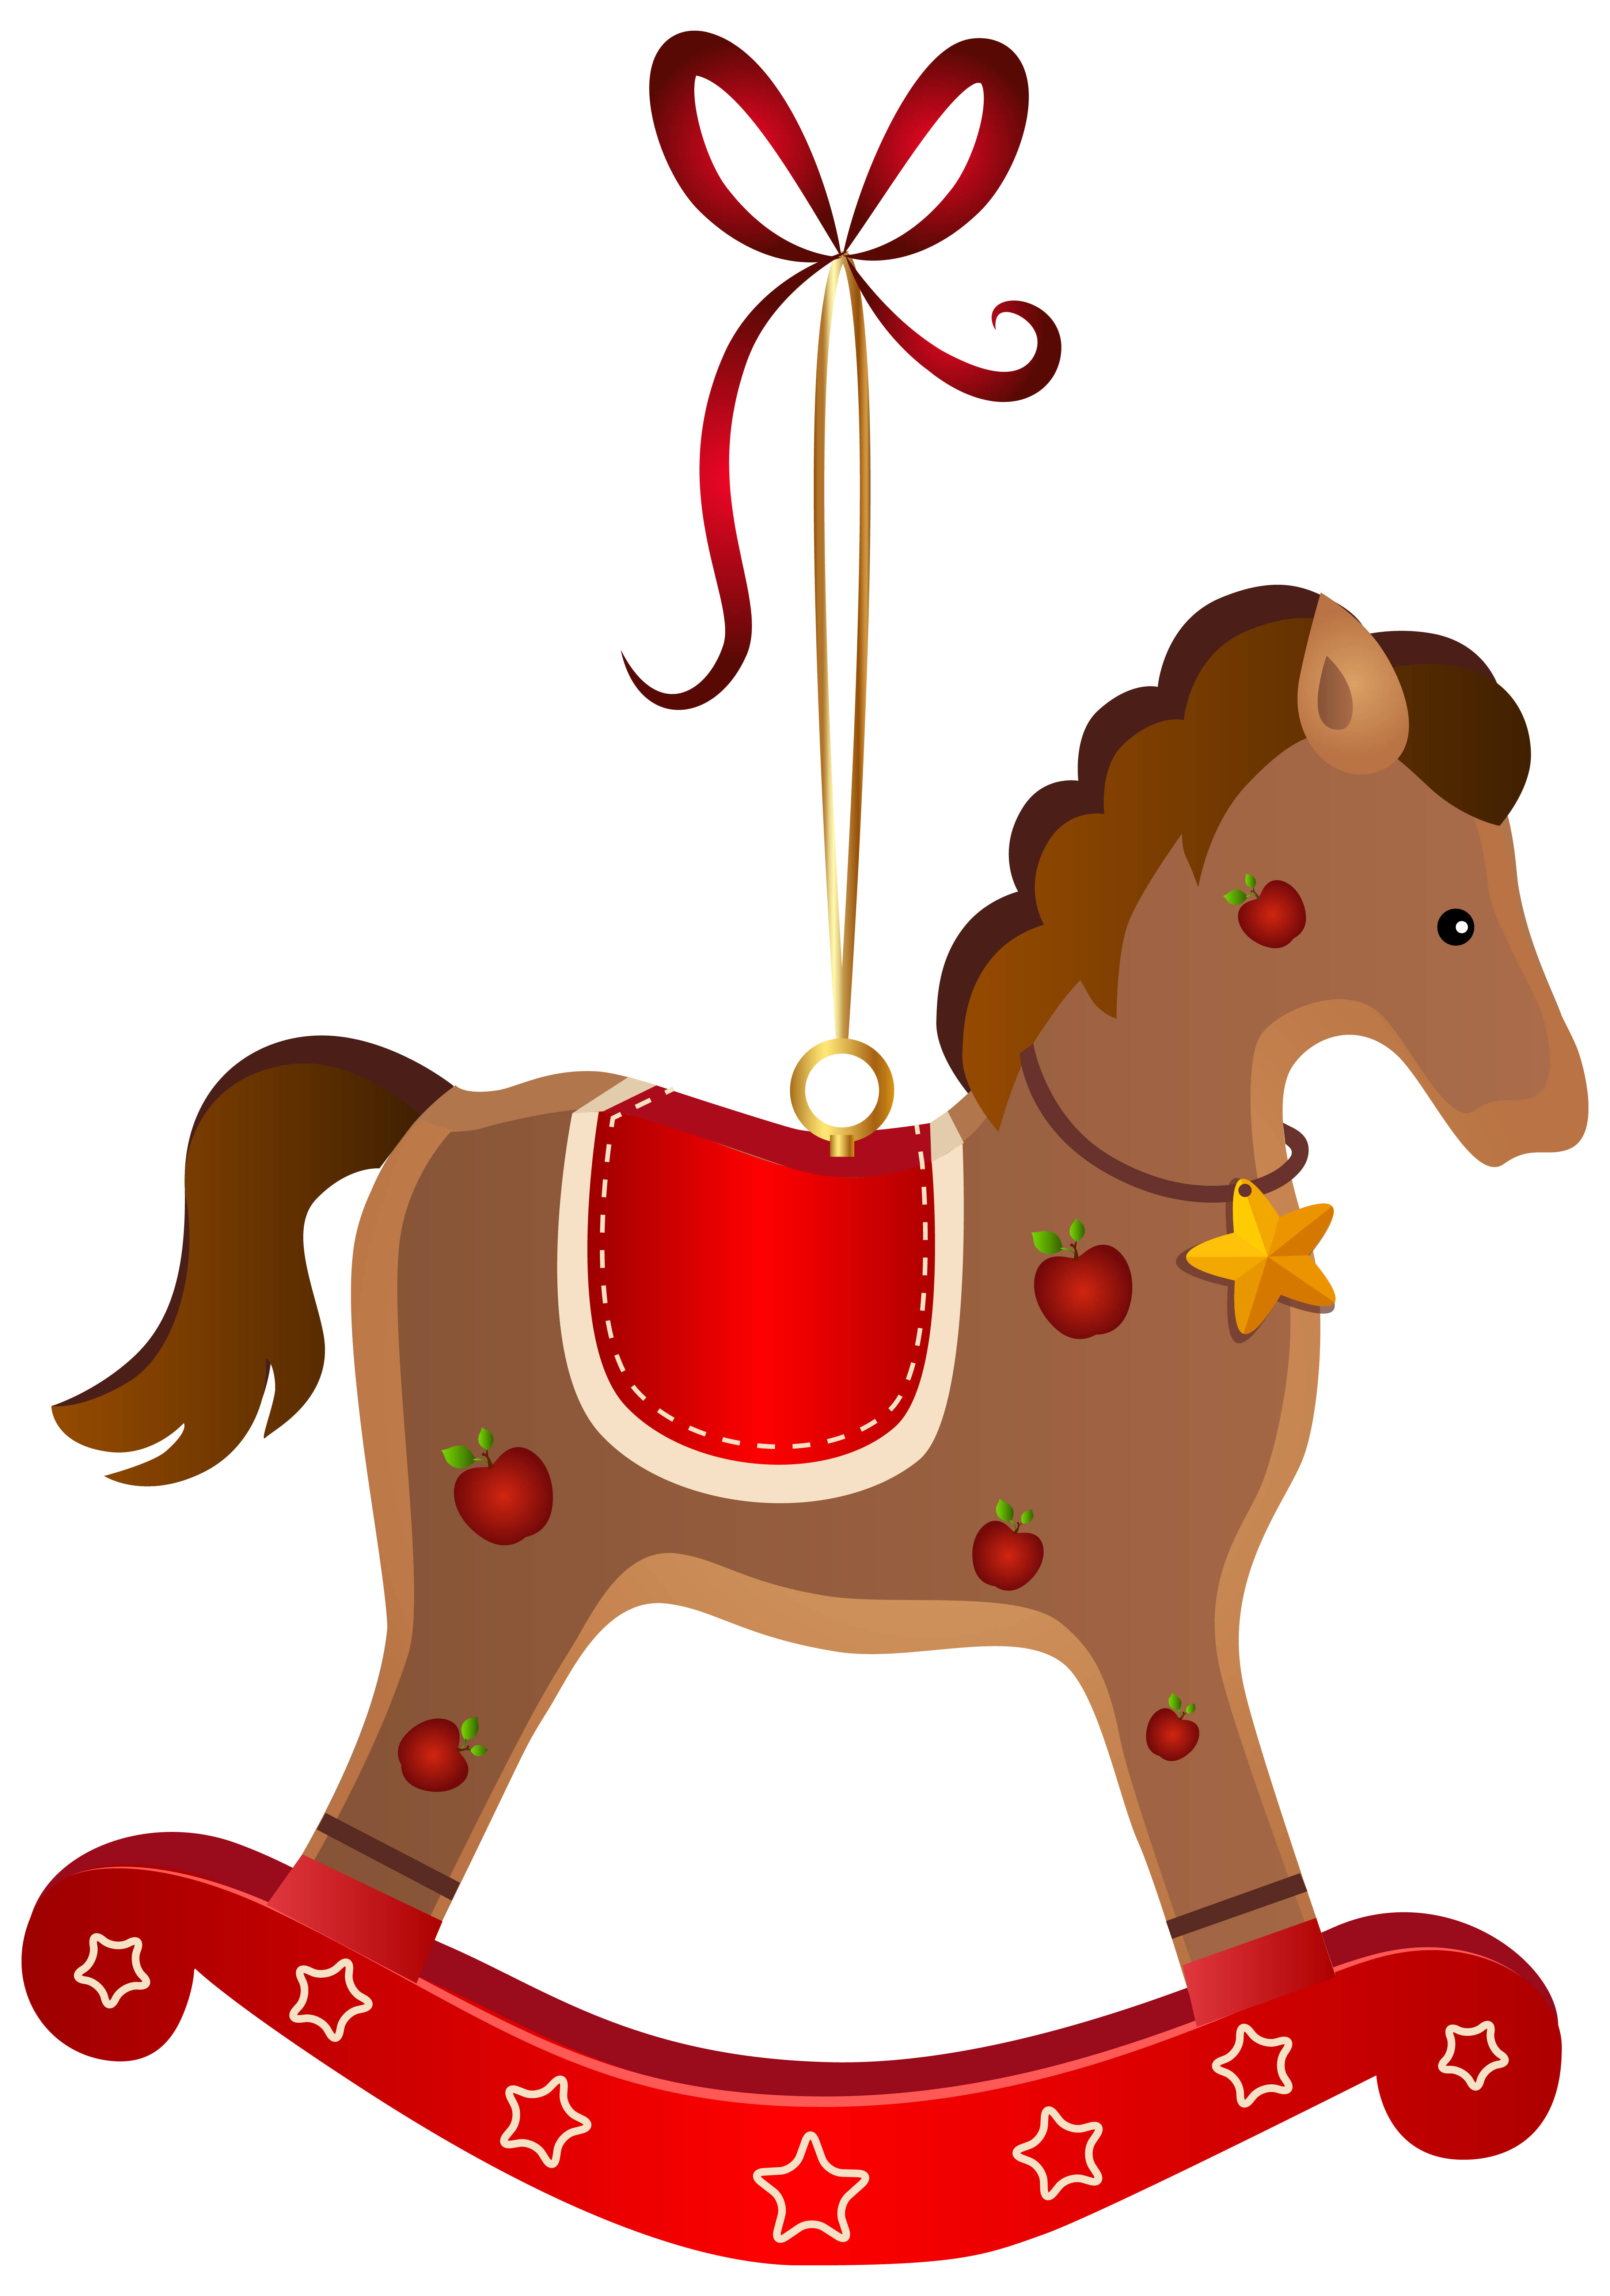 Clipart christmas horse image freeuse download Rocking Horse Christmas Ornament Transparent PNG Clip Art Image ... image freeuse download